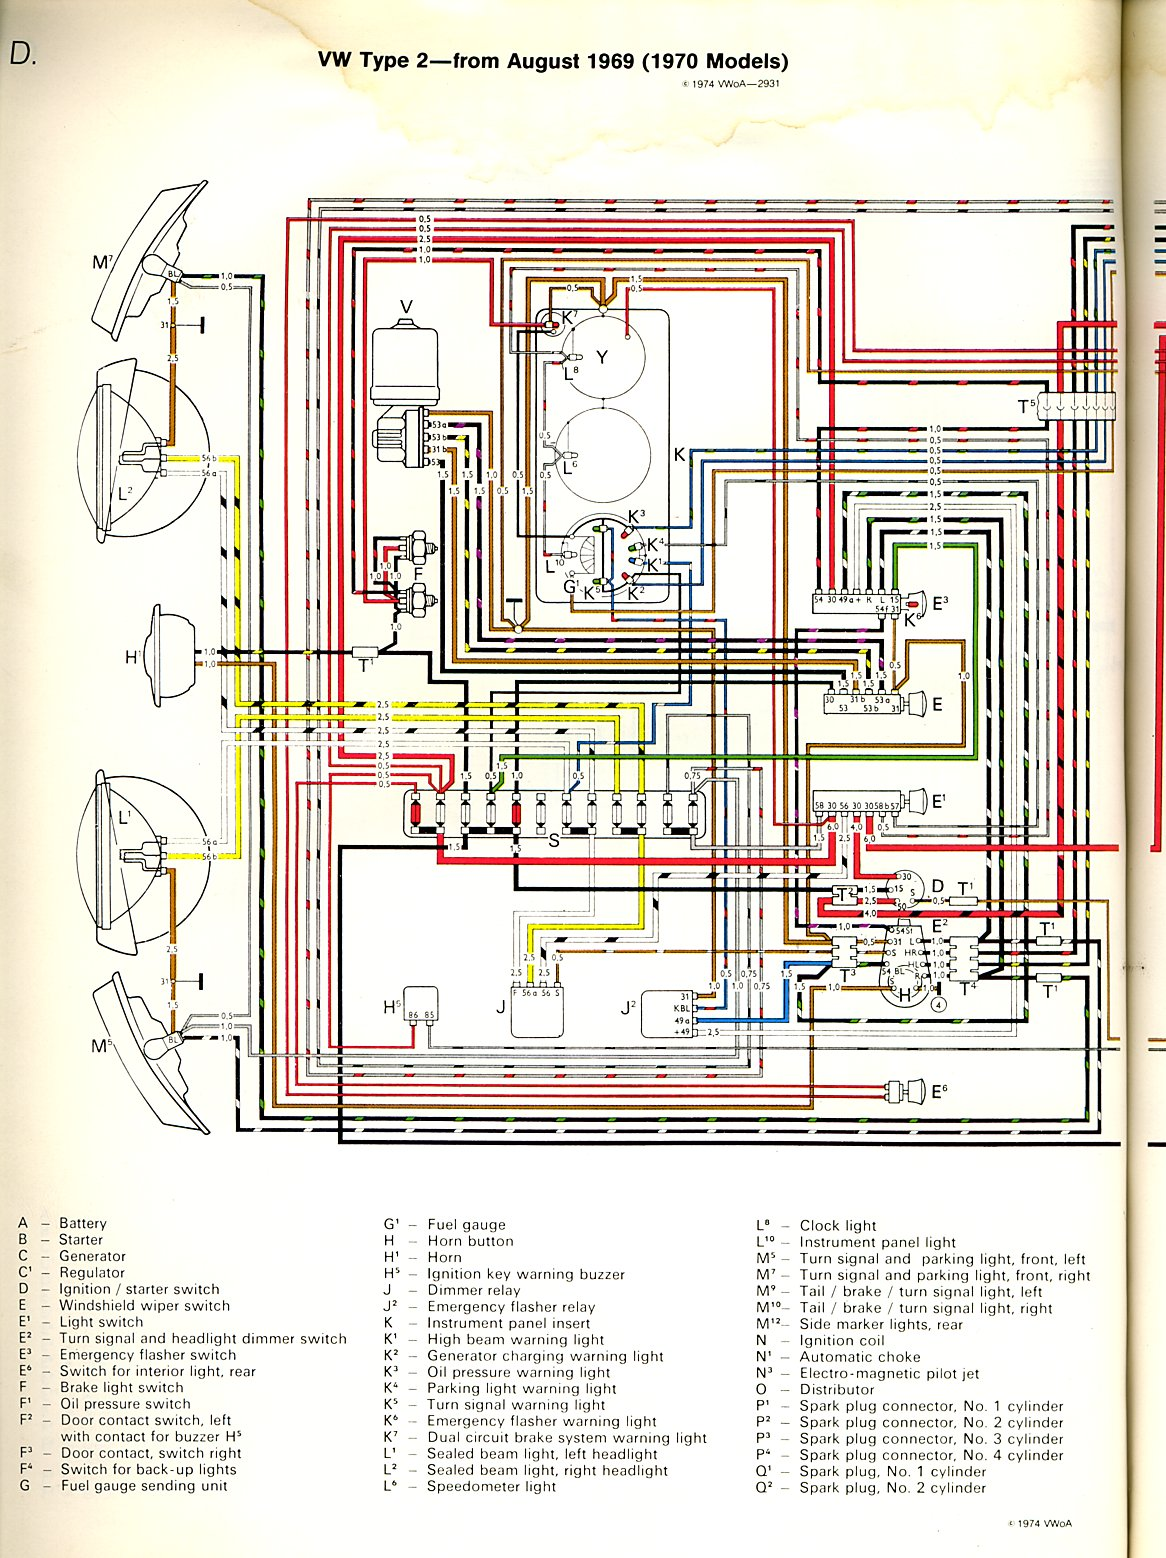 vw bus wiring diagram vw wiring diagrams online vw bus wiring diagram